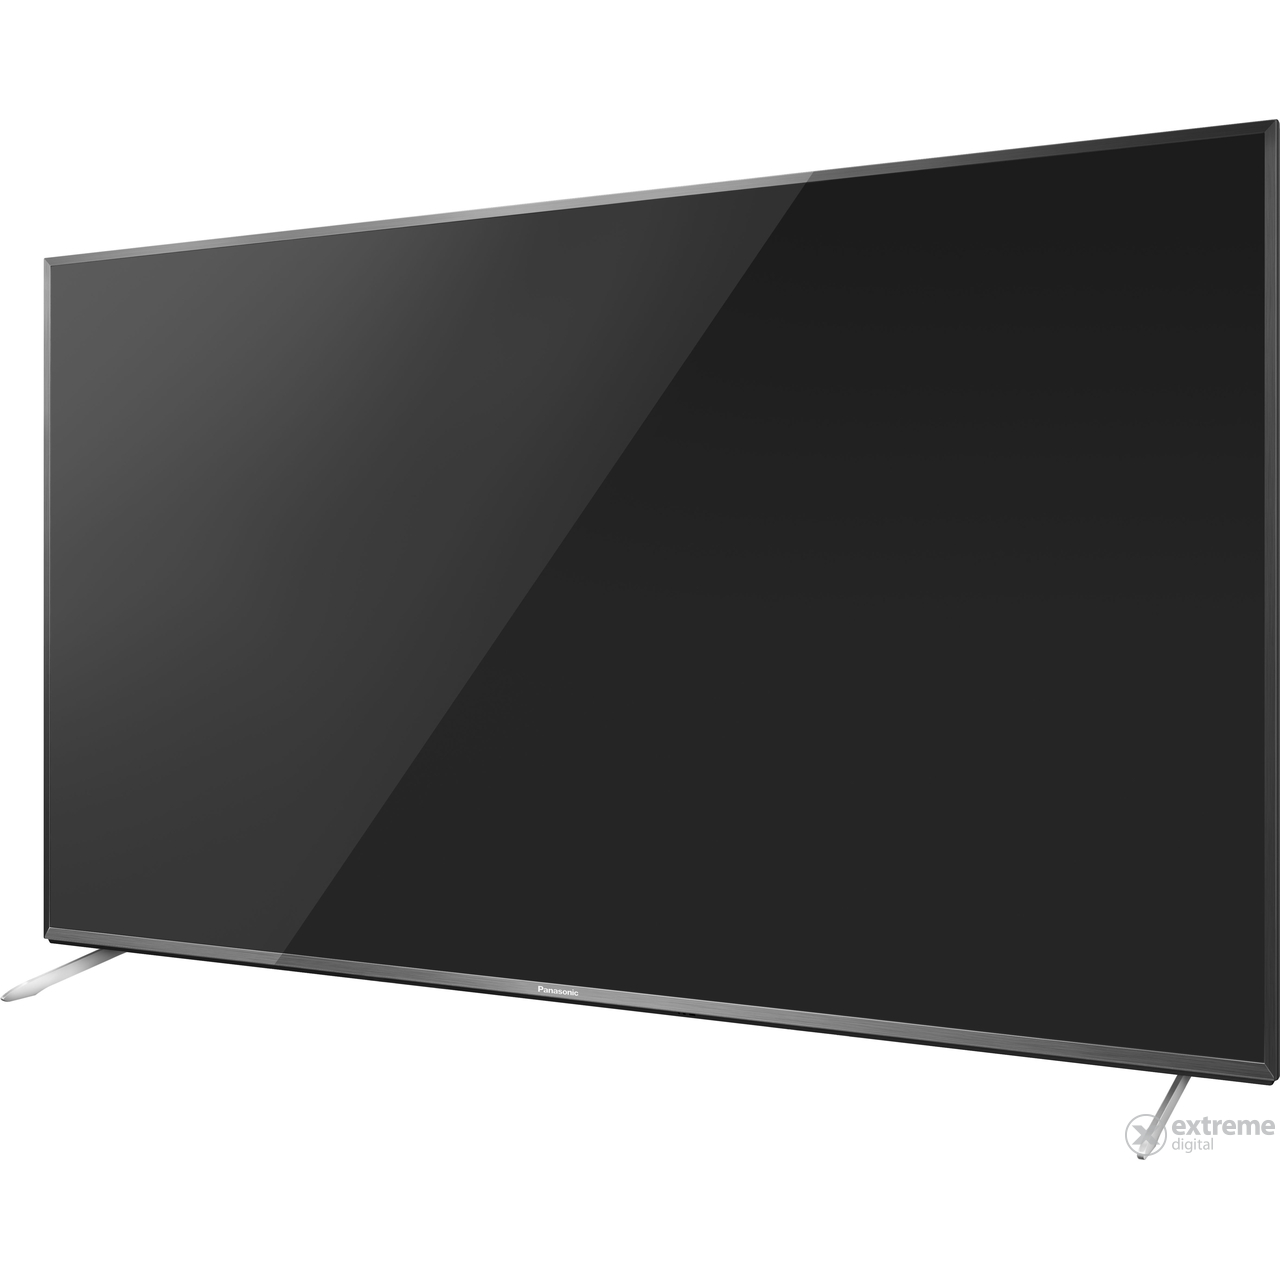 panasonic-tx-43cx740e-uhd-3d-smart-led-televizio_69561d28.jpg